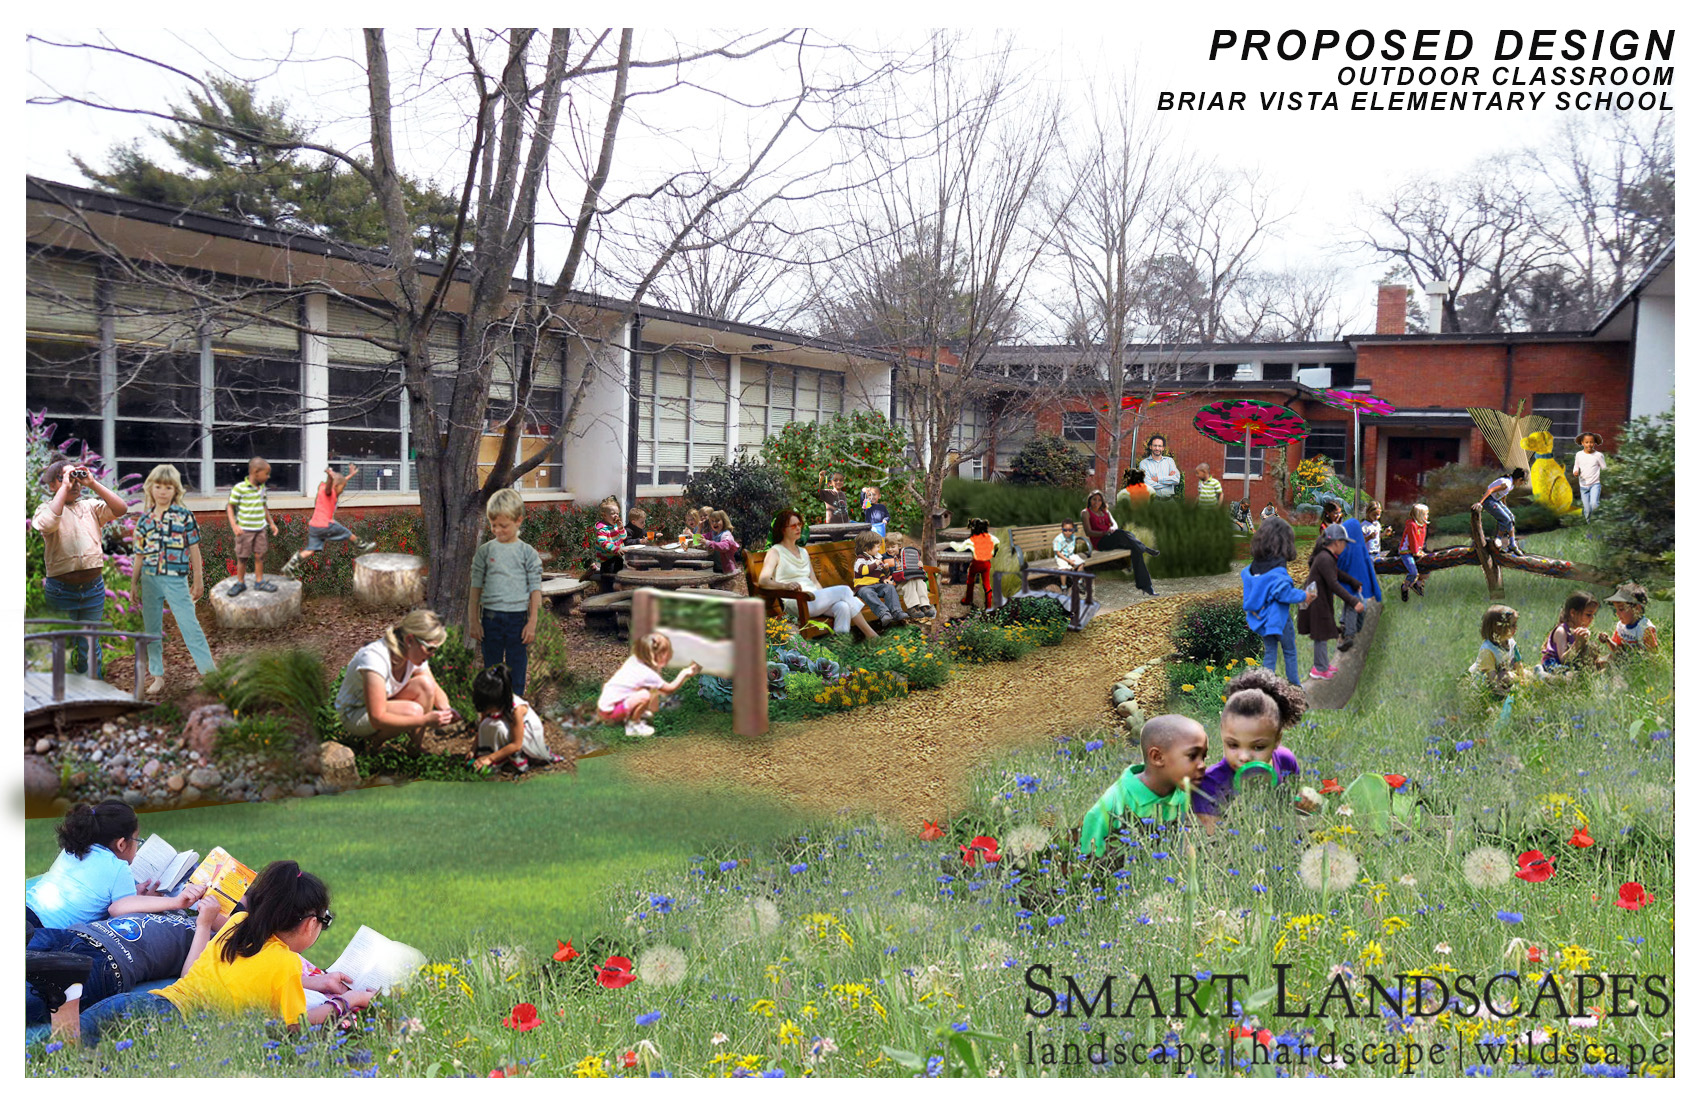 Outdoor Classroom Design ~ Smartlandscapes designworks llc briar vista outdoor